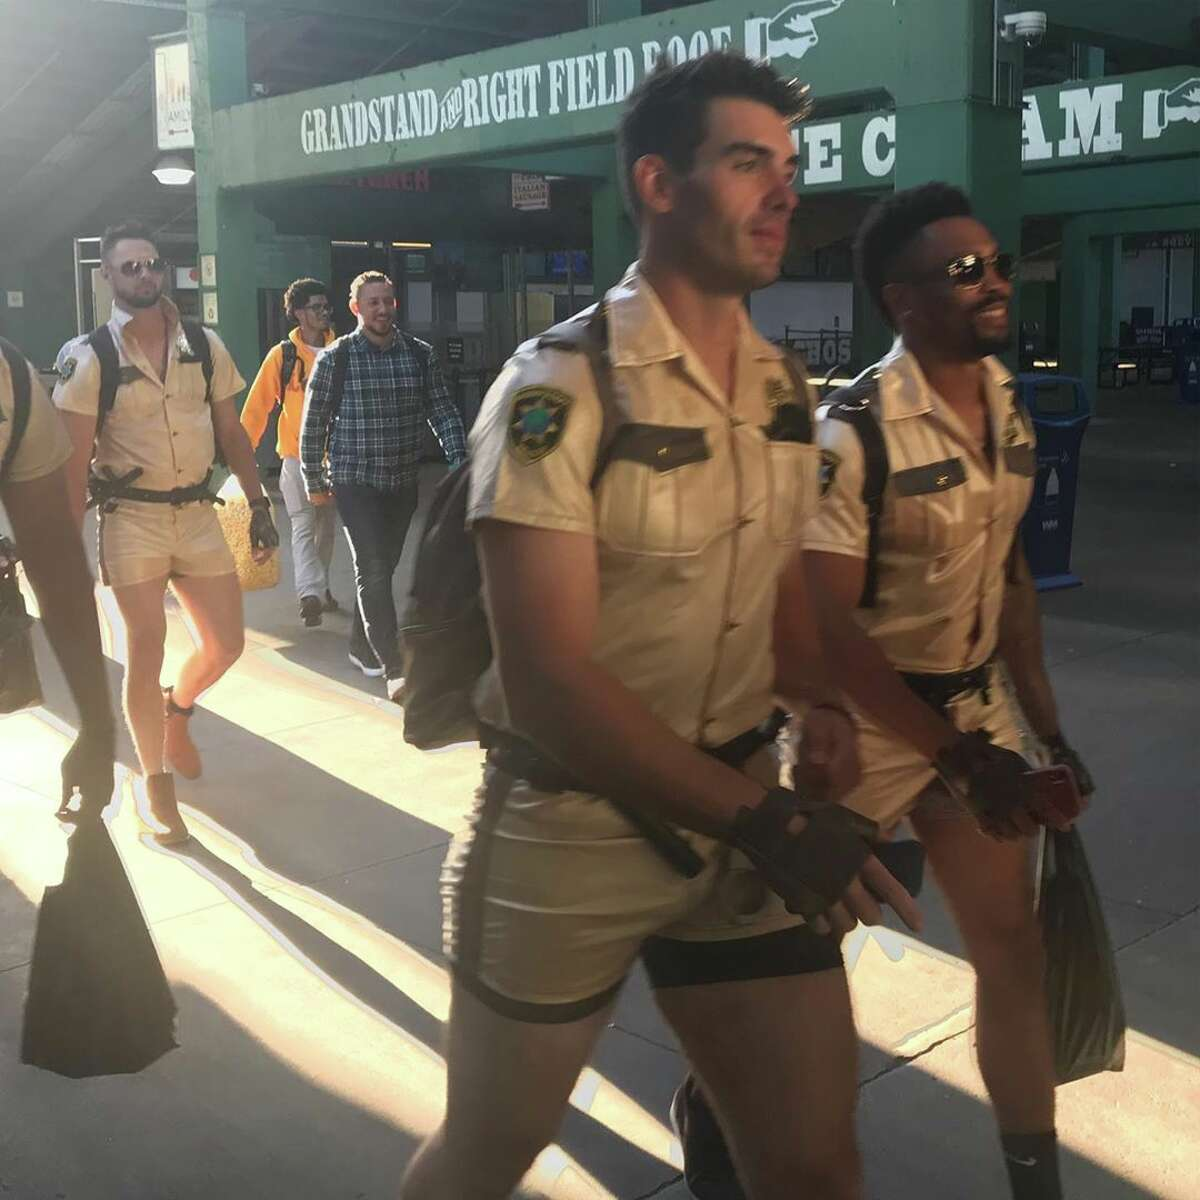 Giants rookies dressed up after the Red Sox series ended.